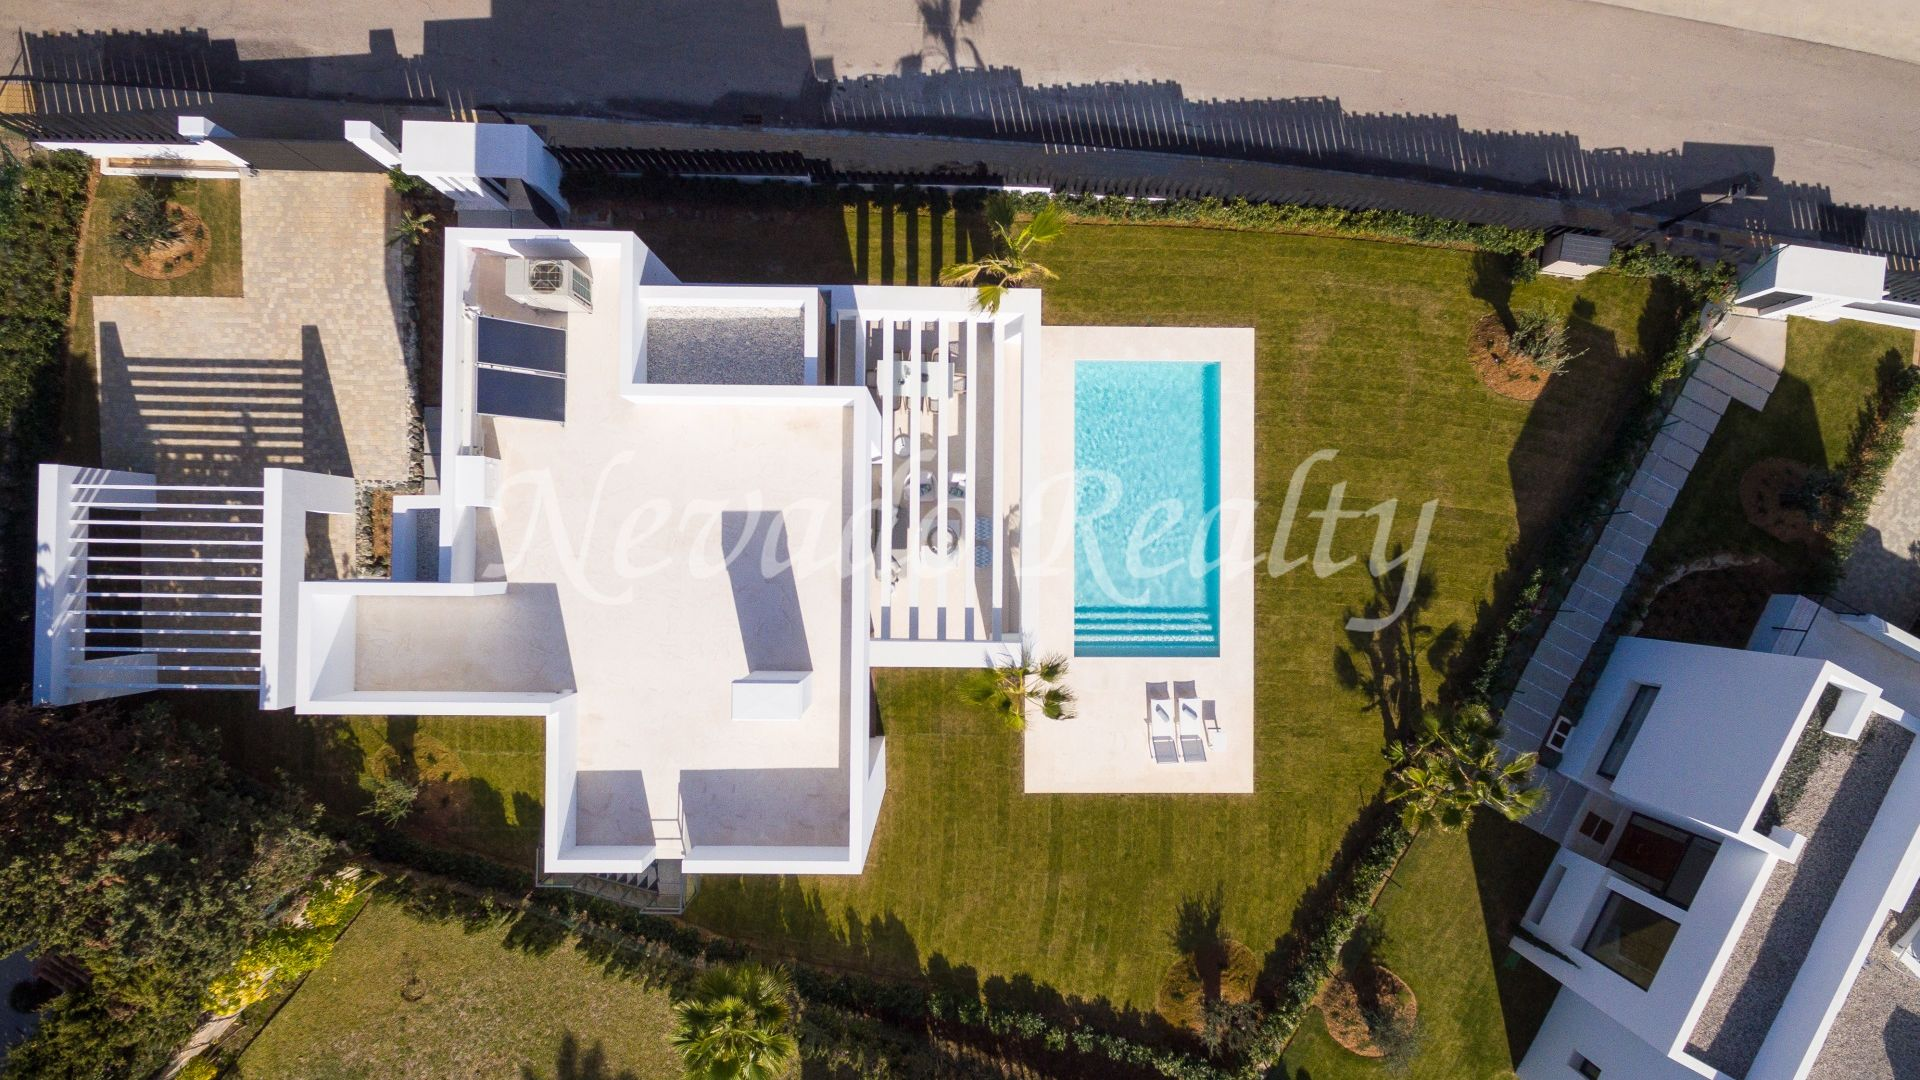 Fantastic opportunity! Brand new villa for sale close to golf courses in El Paraiso